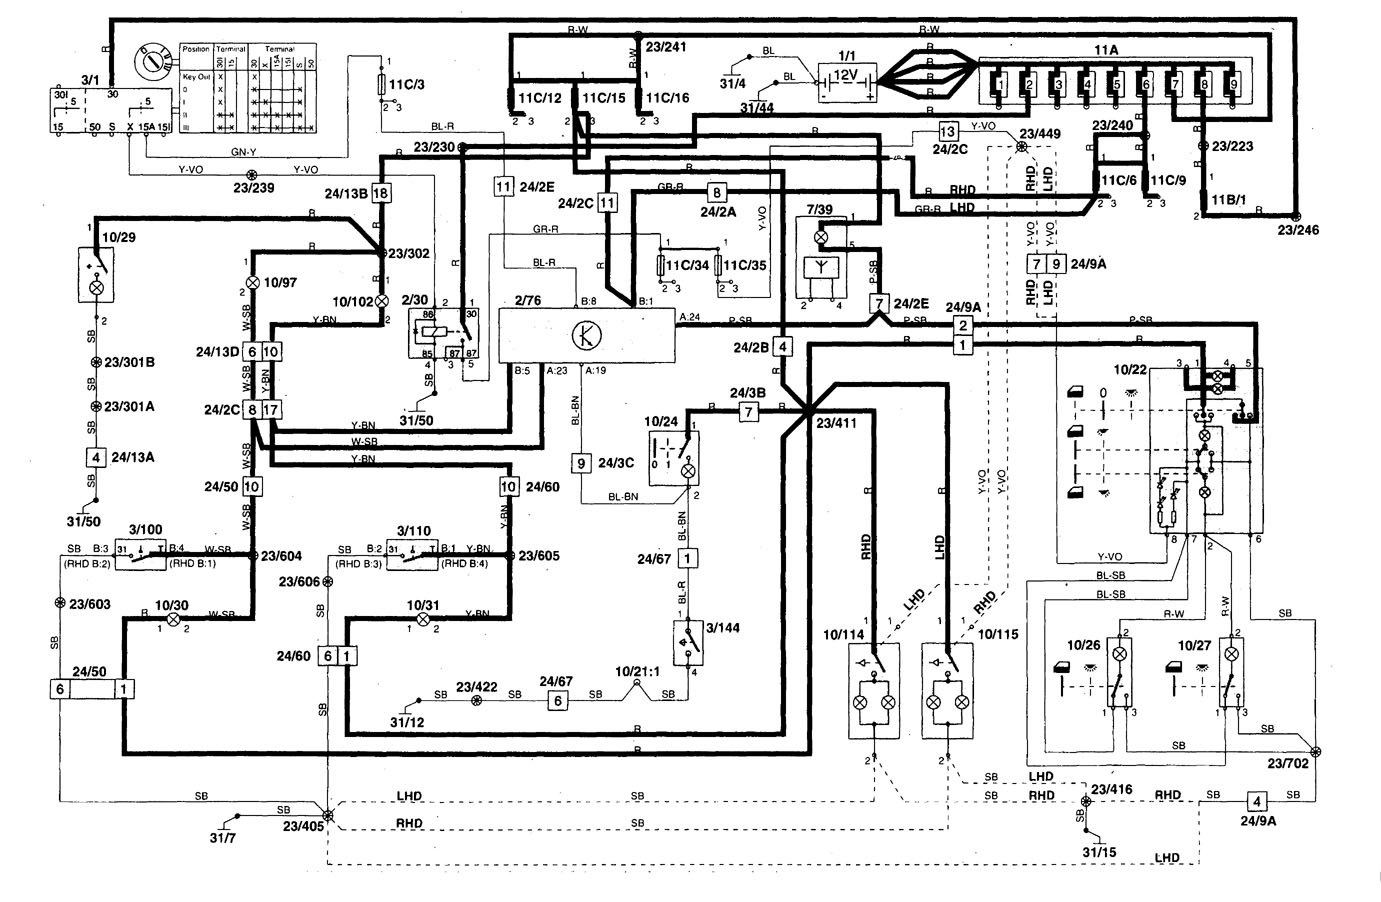 Volvo C70 Engine Diagram Wiring For 2004 Diagrams 1998 Interior Semi Truck 1999 S70